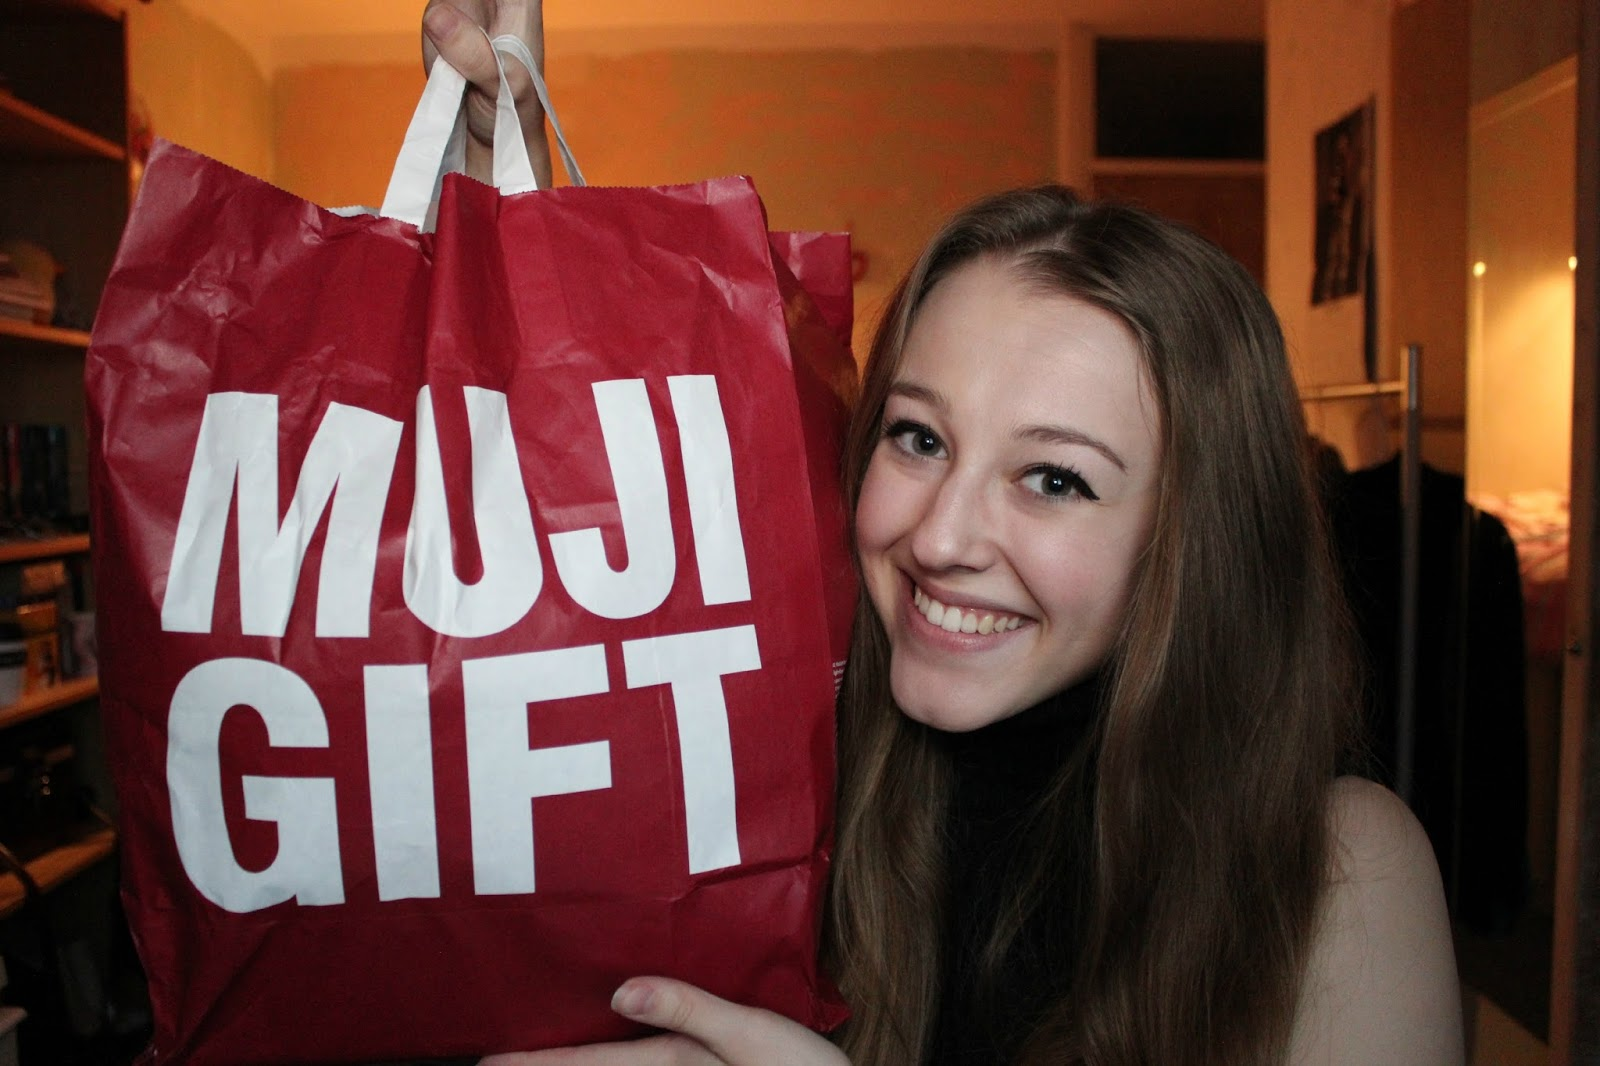 georgie minter-brown, actress, blogger, youth, winter, muji, haul, winter haul, muji haul